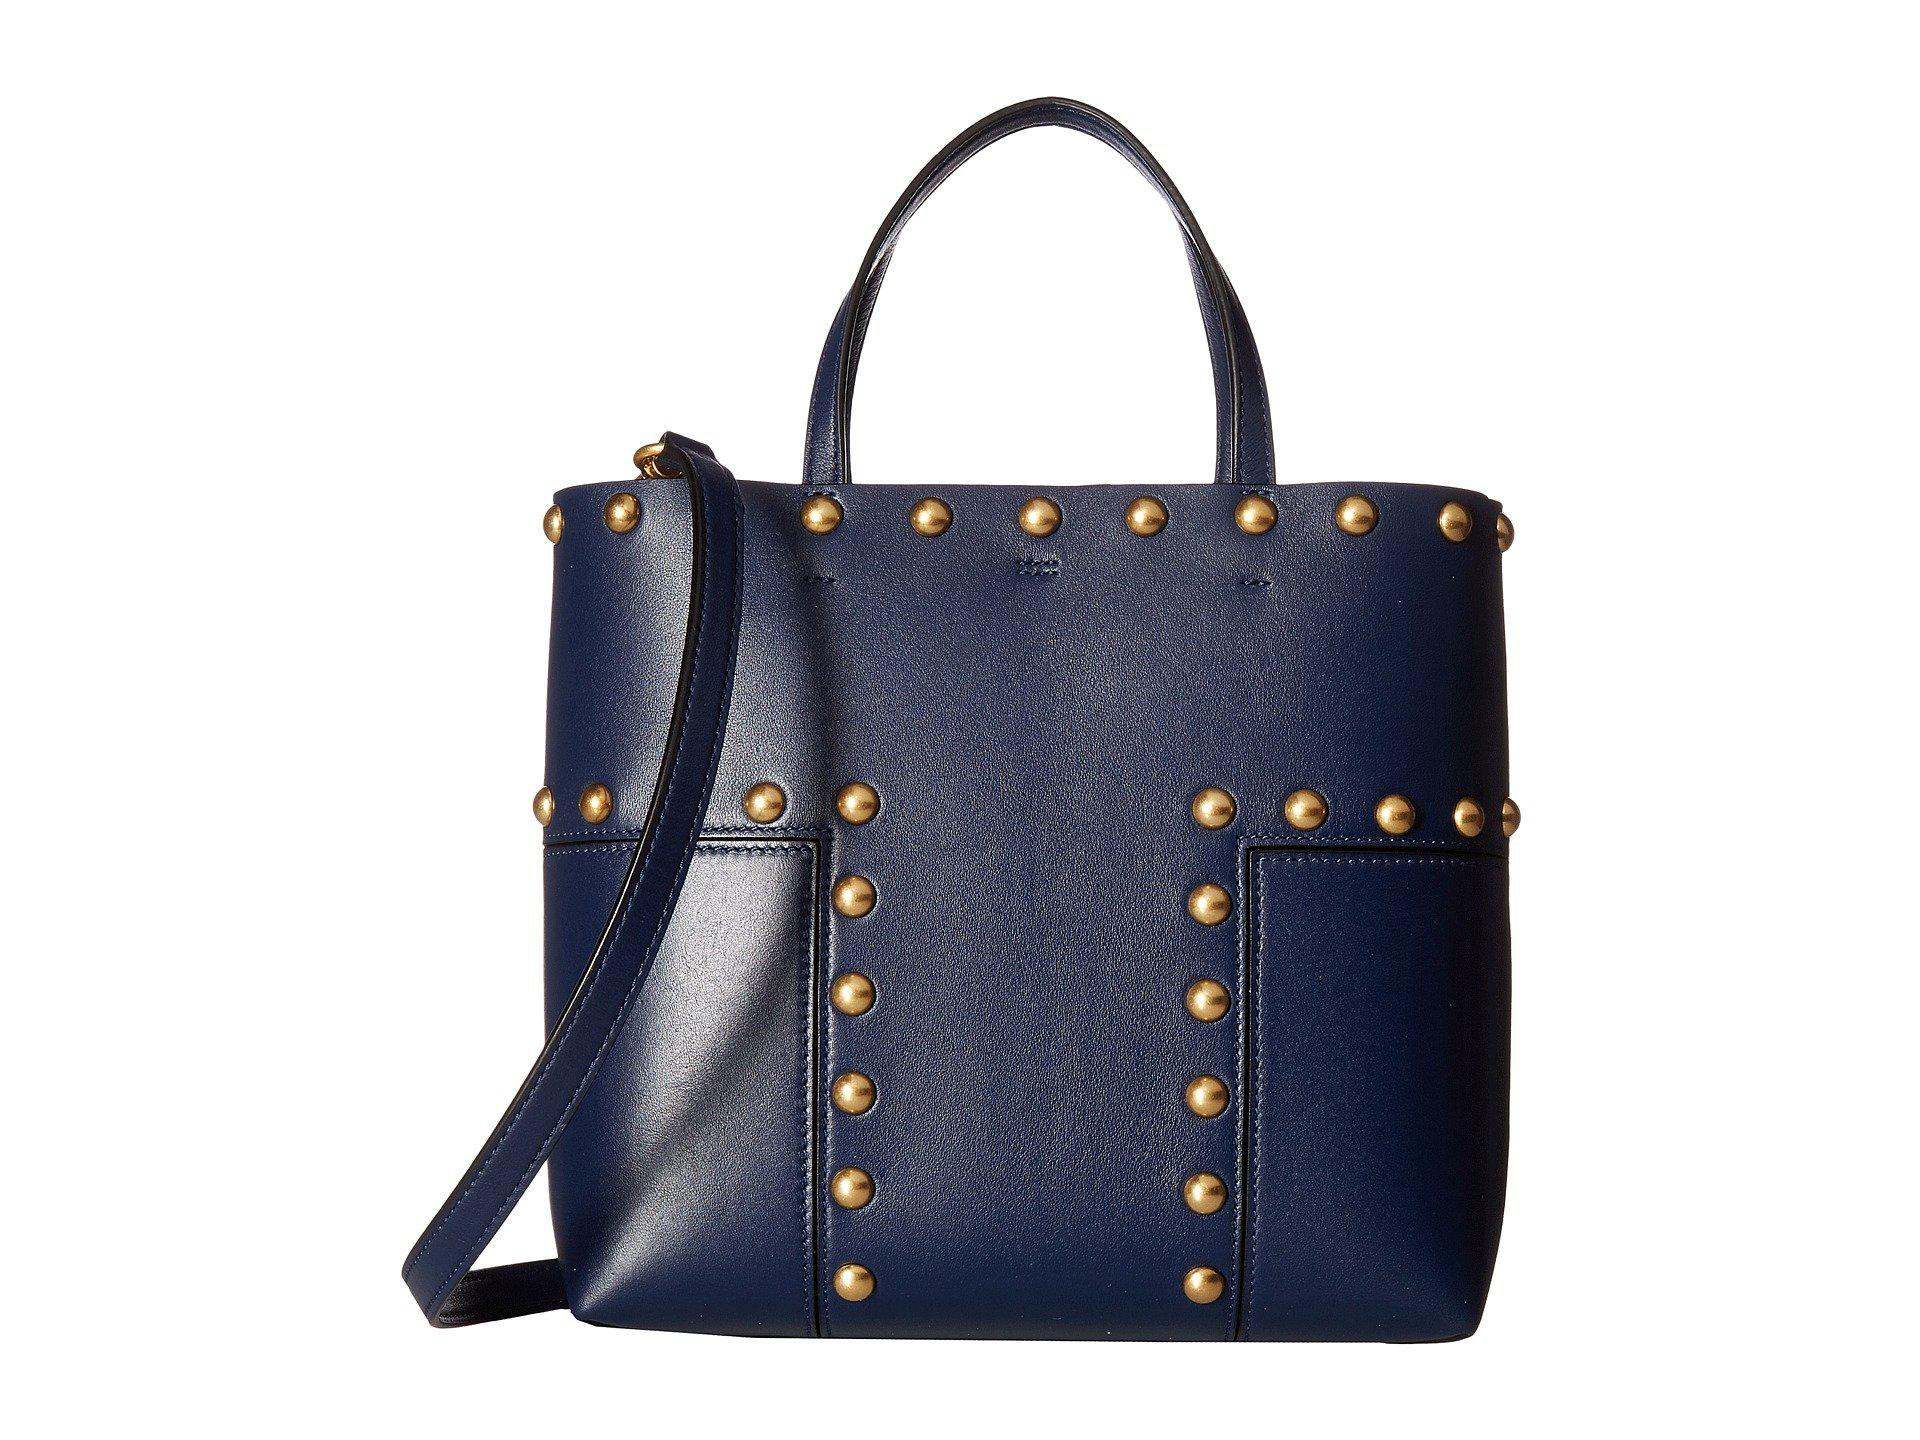 72cc9ab0c21 Lyst - Tory Burch Block-t Stud Mini Tote in Blue